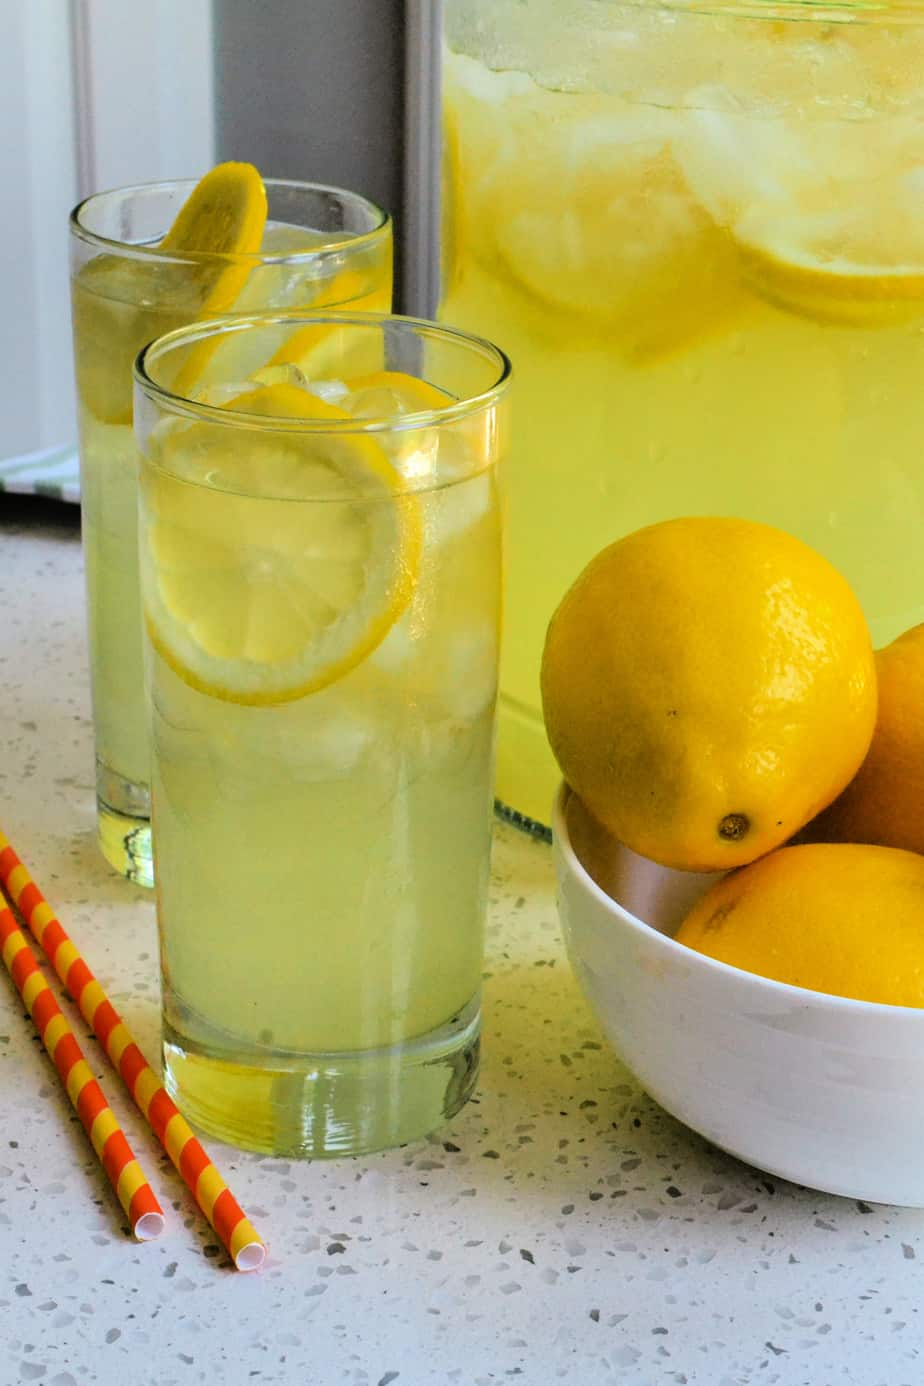 Glassed filled with ice cold homemade lemonade.